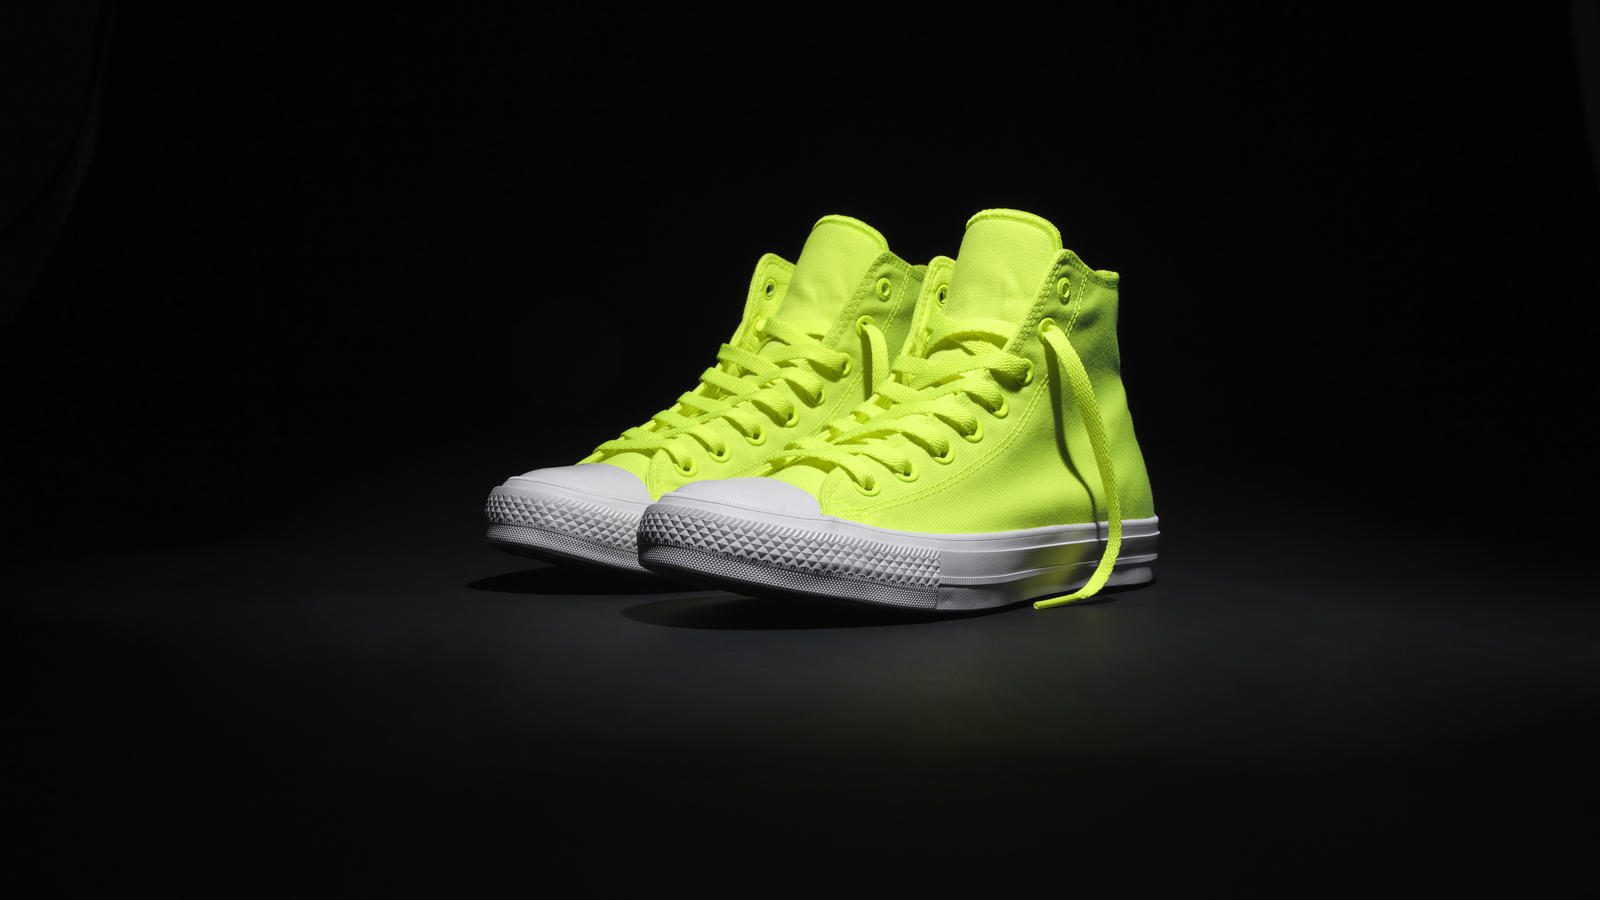 1d932aaa74ae CONVERSE CHUCK TAYLOR ALL STAR II SHOWS ITS TRUE COLORS WITH LIMITED ...